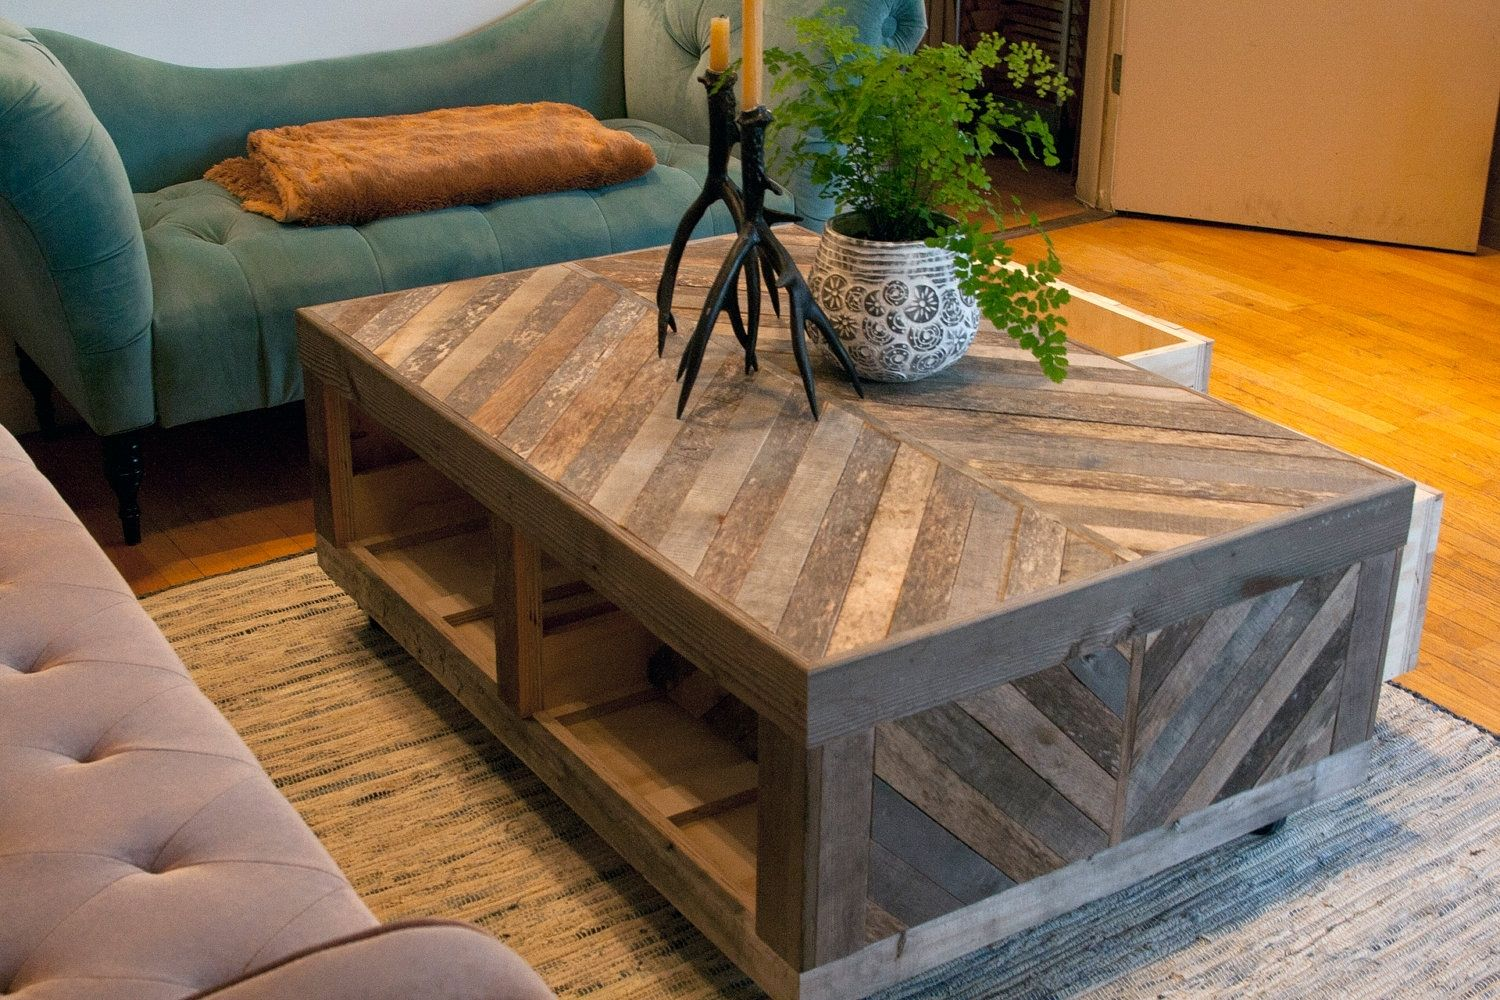 Hand Crafted Rustic Reclaimed Sustainably Harvested Wood Coffee Table With Chevron Pattern By New Antiquity Custommade